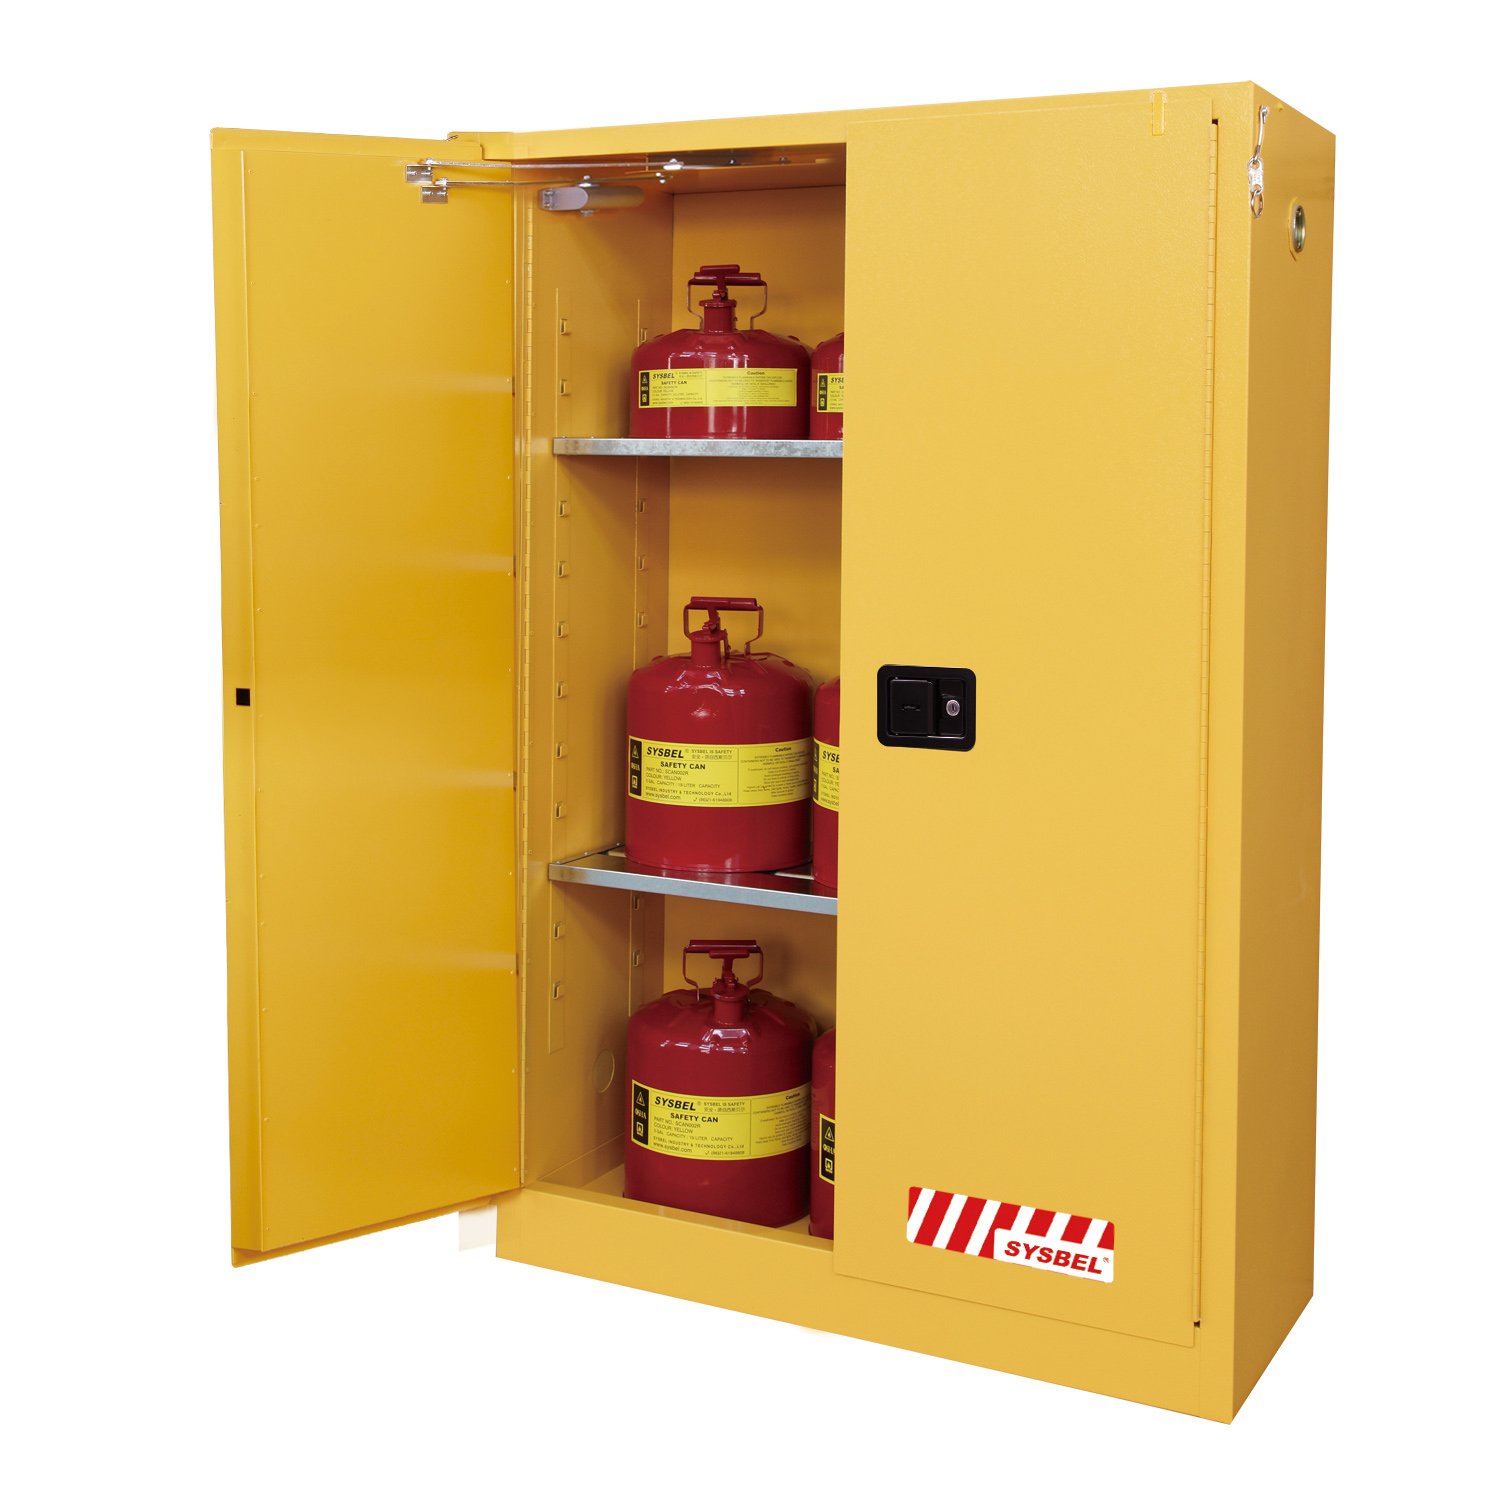 SD45170F 170L SYSBEL Flammable Cabinet Self Closing